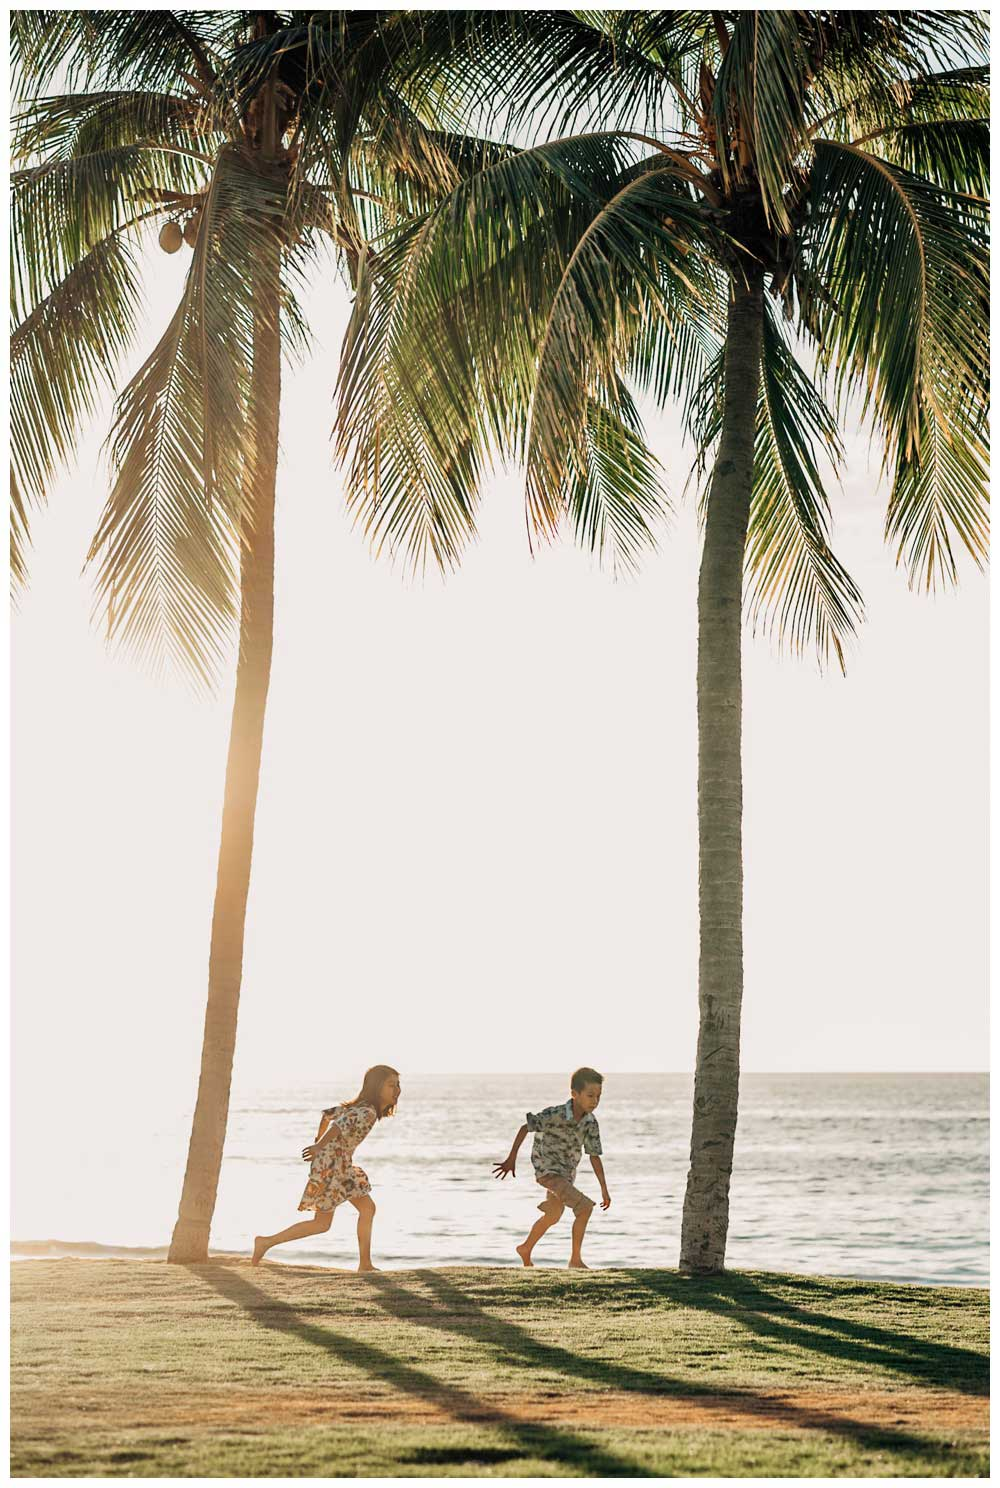 Kids running under palm trees in Playa Flamingo Costa Rica. Photographed by Kristen M. Brown, Samba to the Sea Photography.